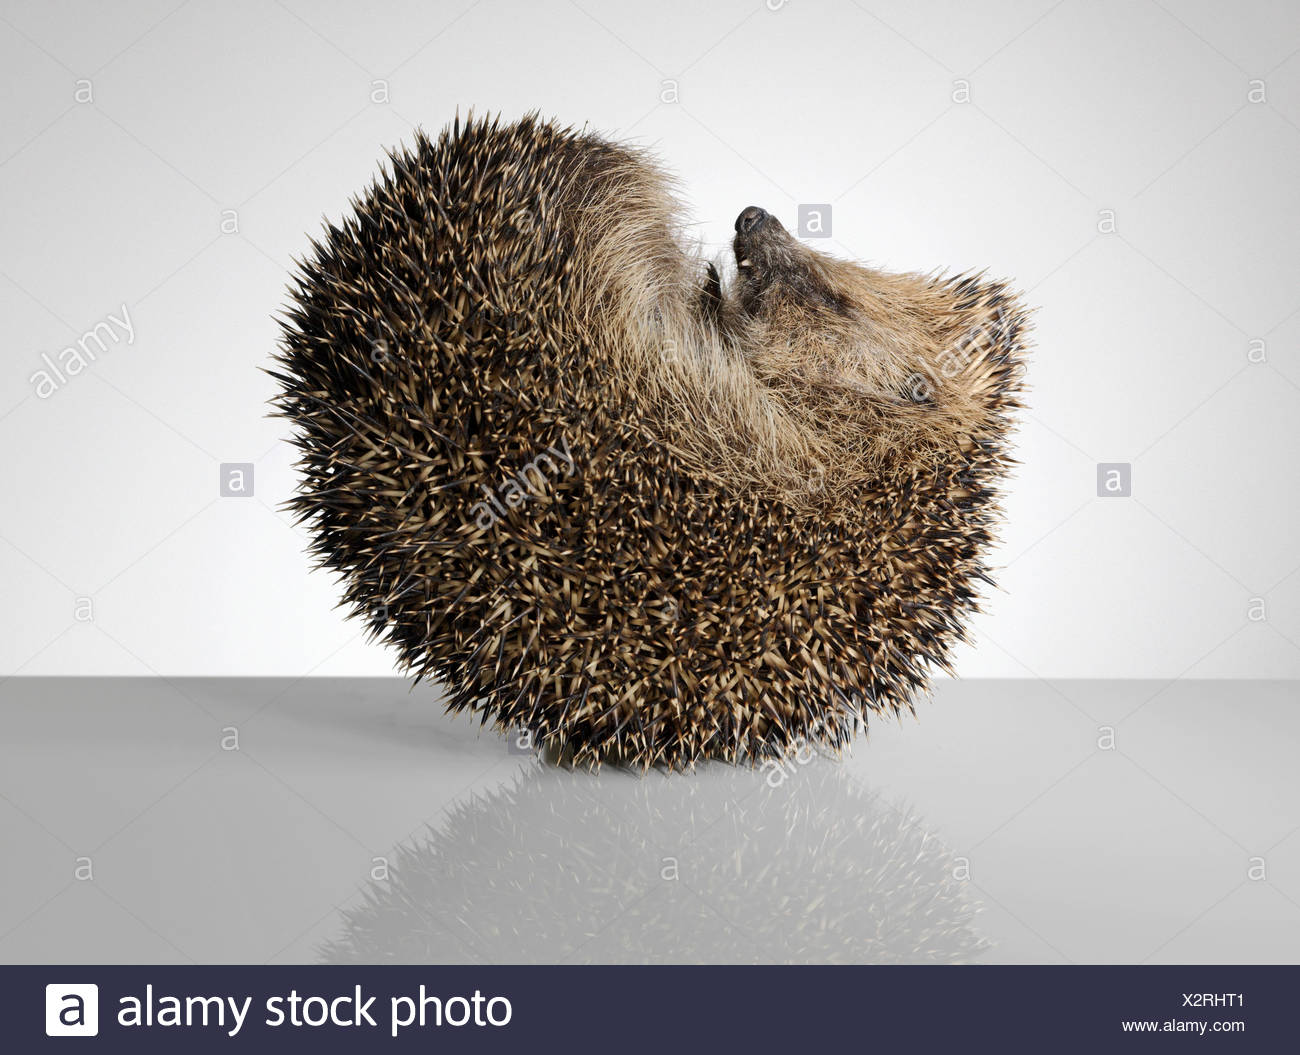 Hedgehog, curled up Stock Photo